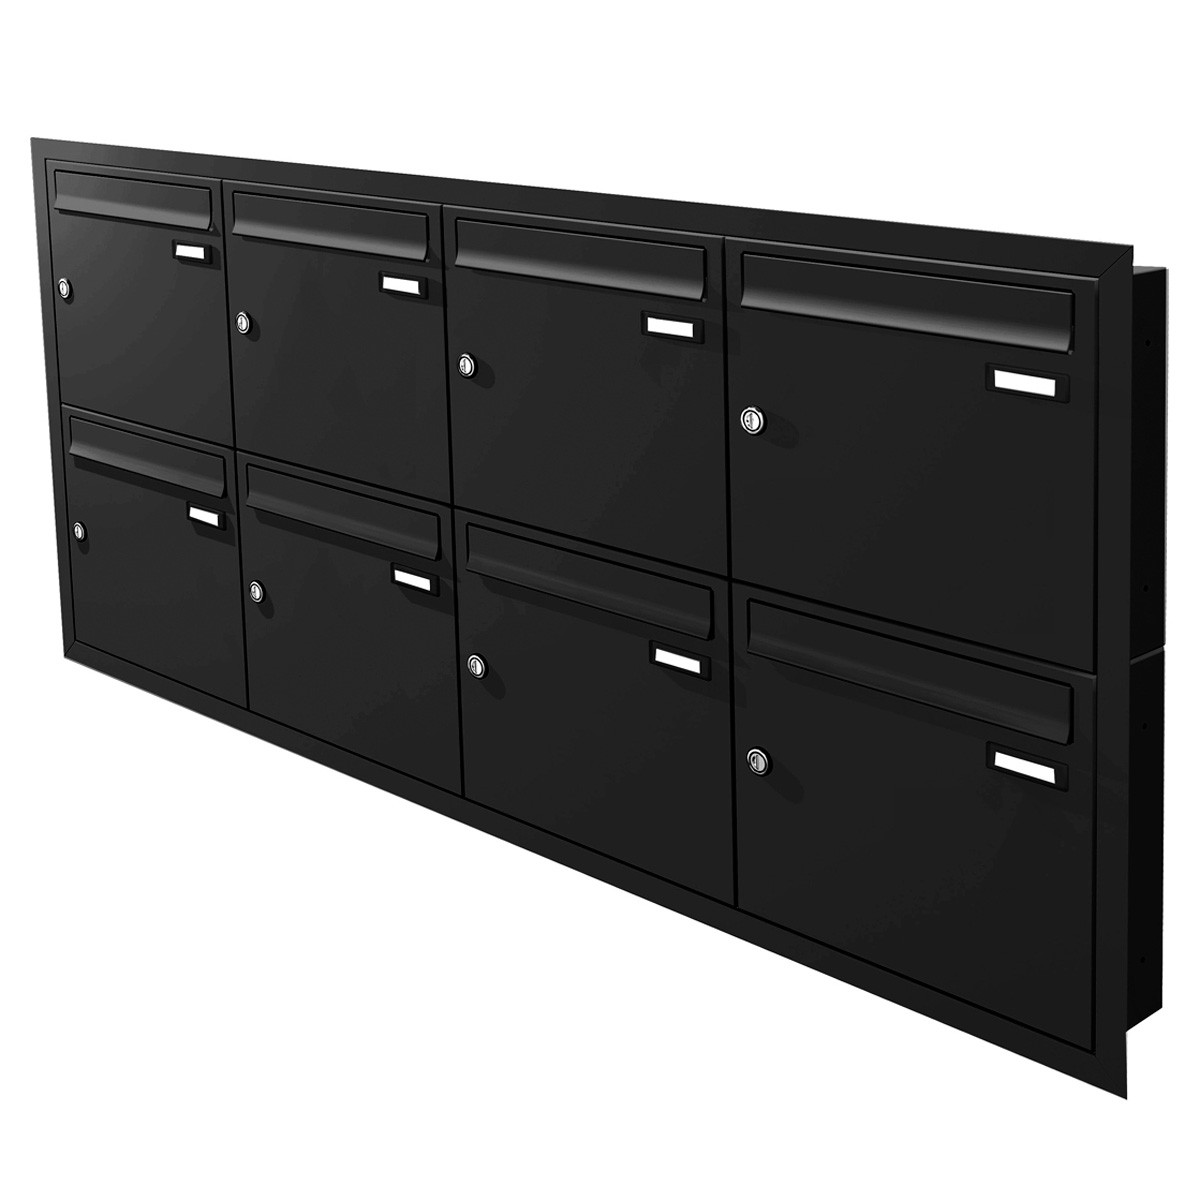 max knobloch unterputz briefkastenanlage 1 12. Black Bedroom Furniture Sets. Home Design Ideas